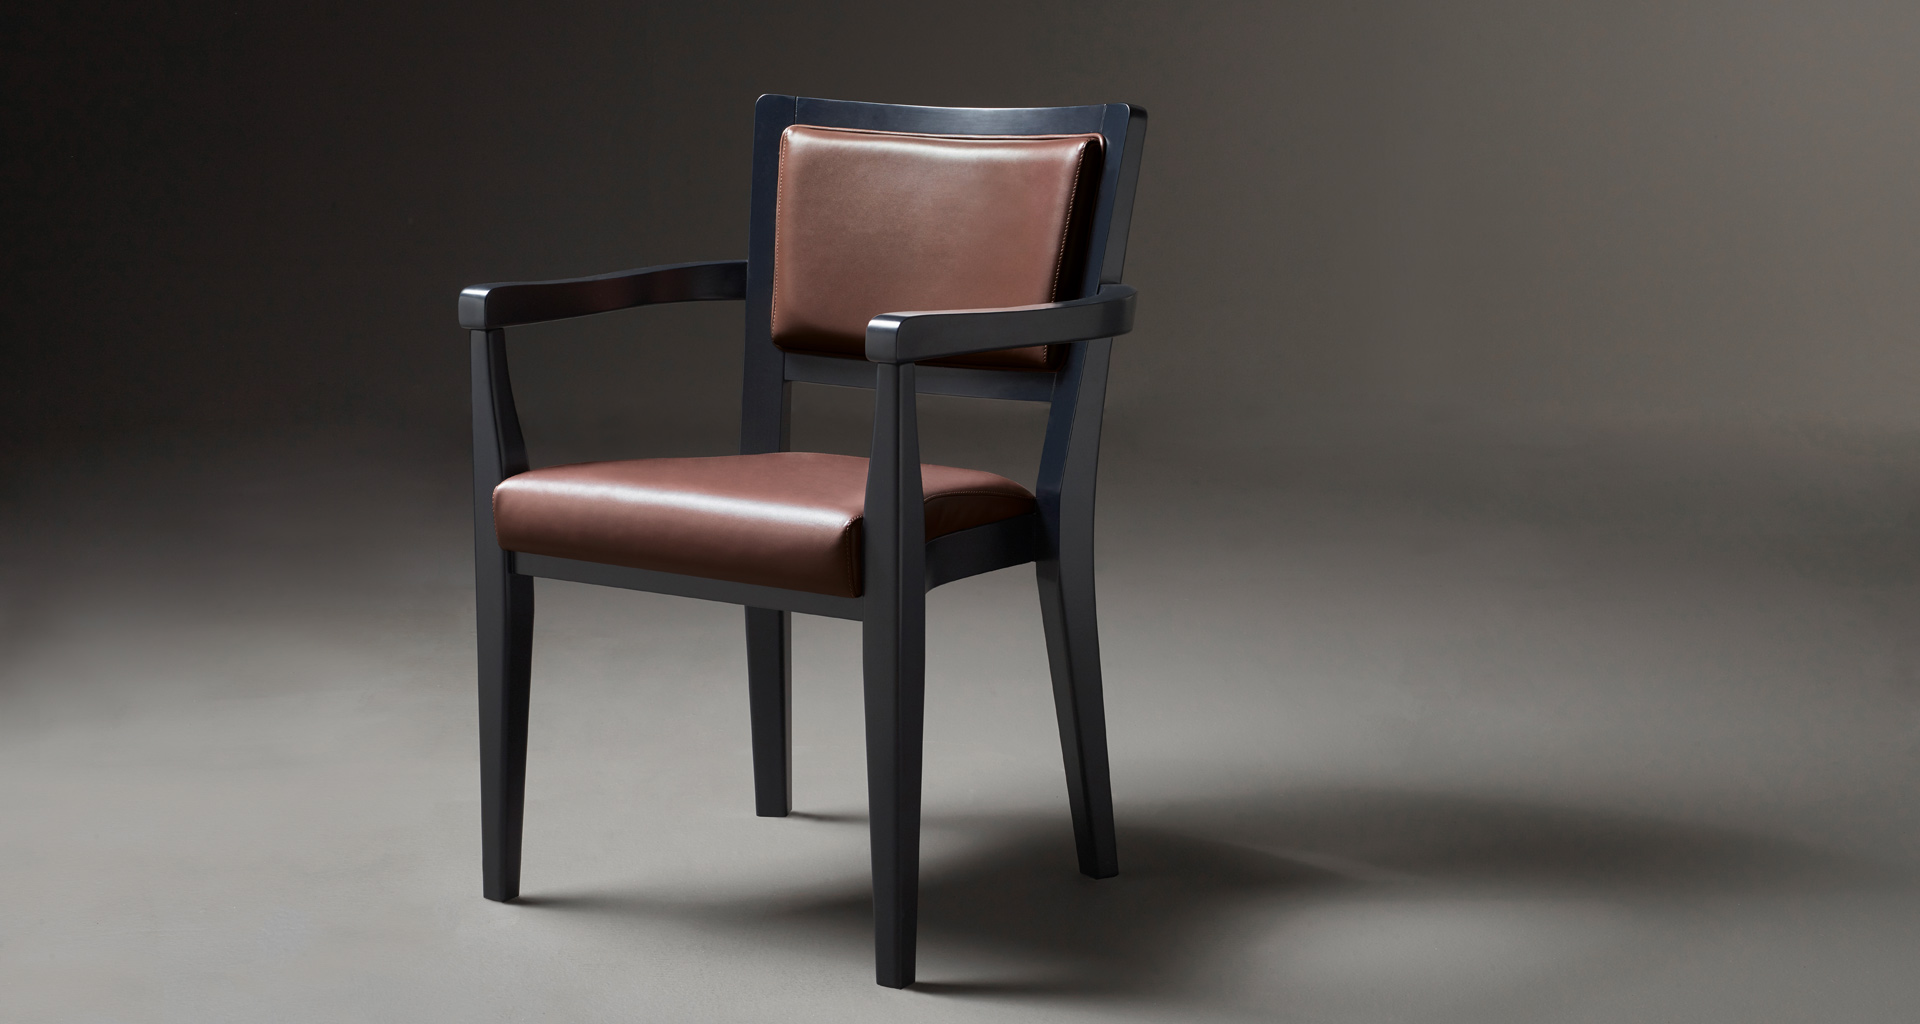 Bistrot is a wooden dining chair, with armrests and fabric or leather seat and back, from Promemoria's catalogue | Promemoria